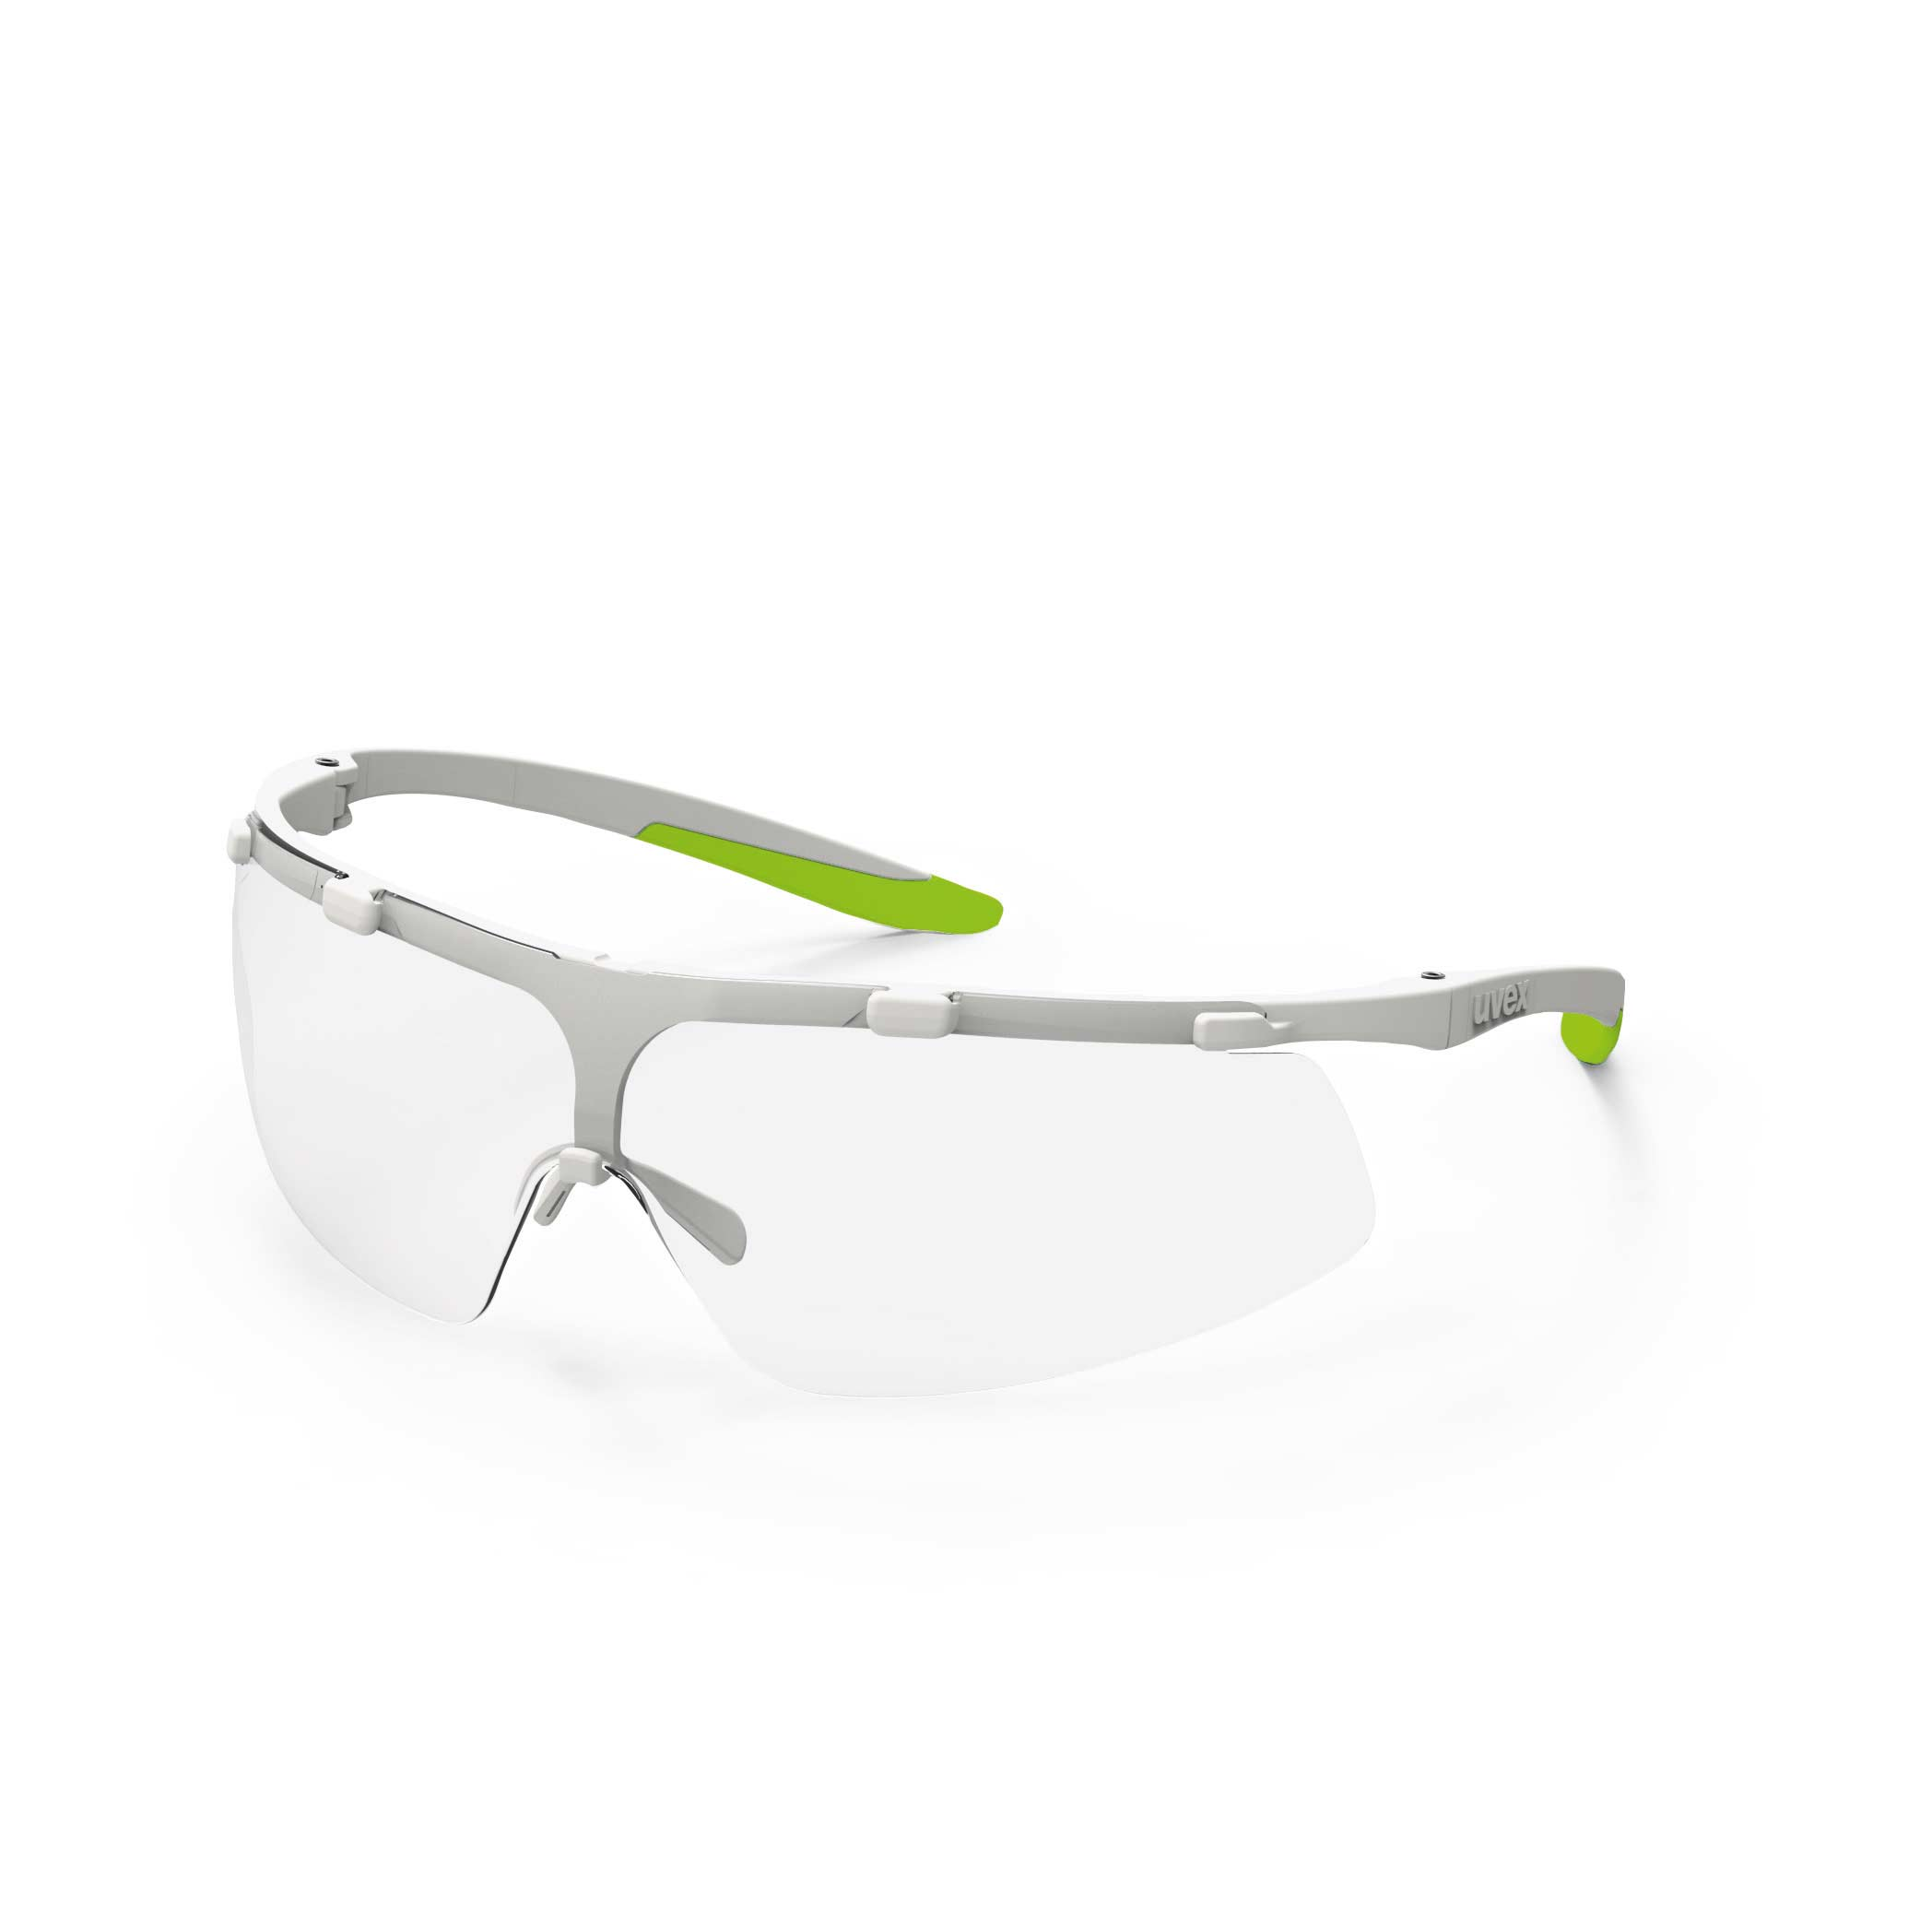 Uvex Super Fit Spectacles Safety Glasses Uvex Safety